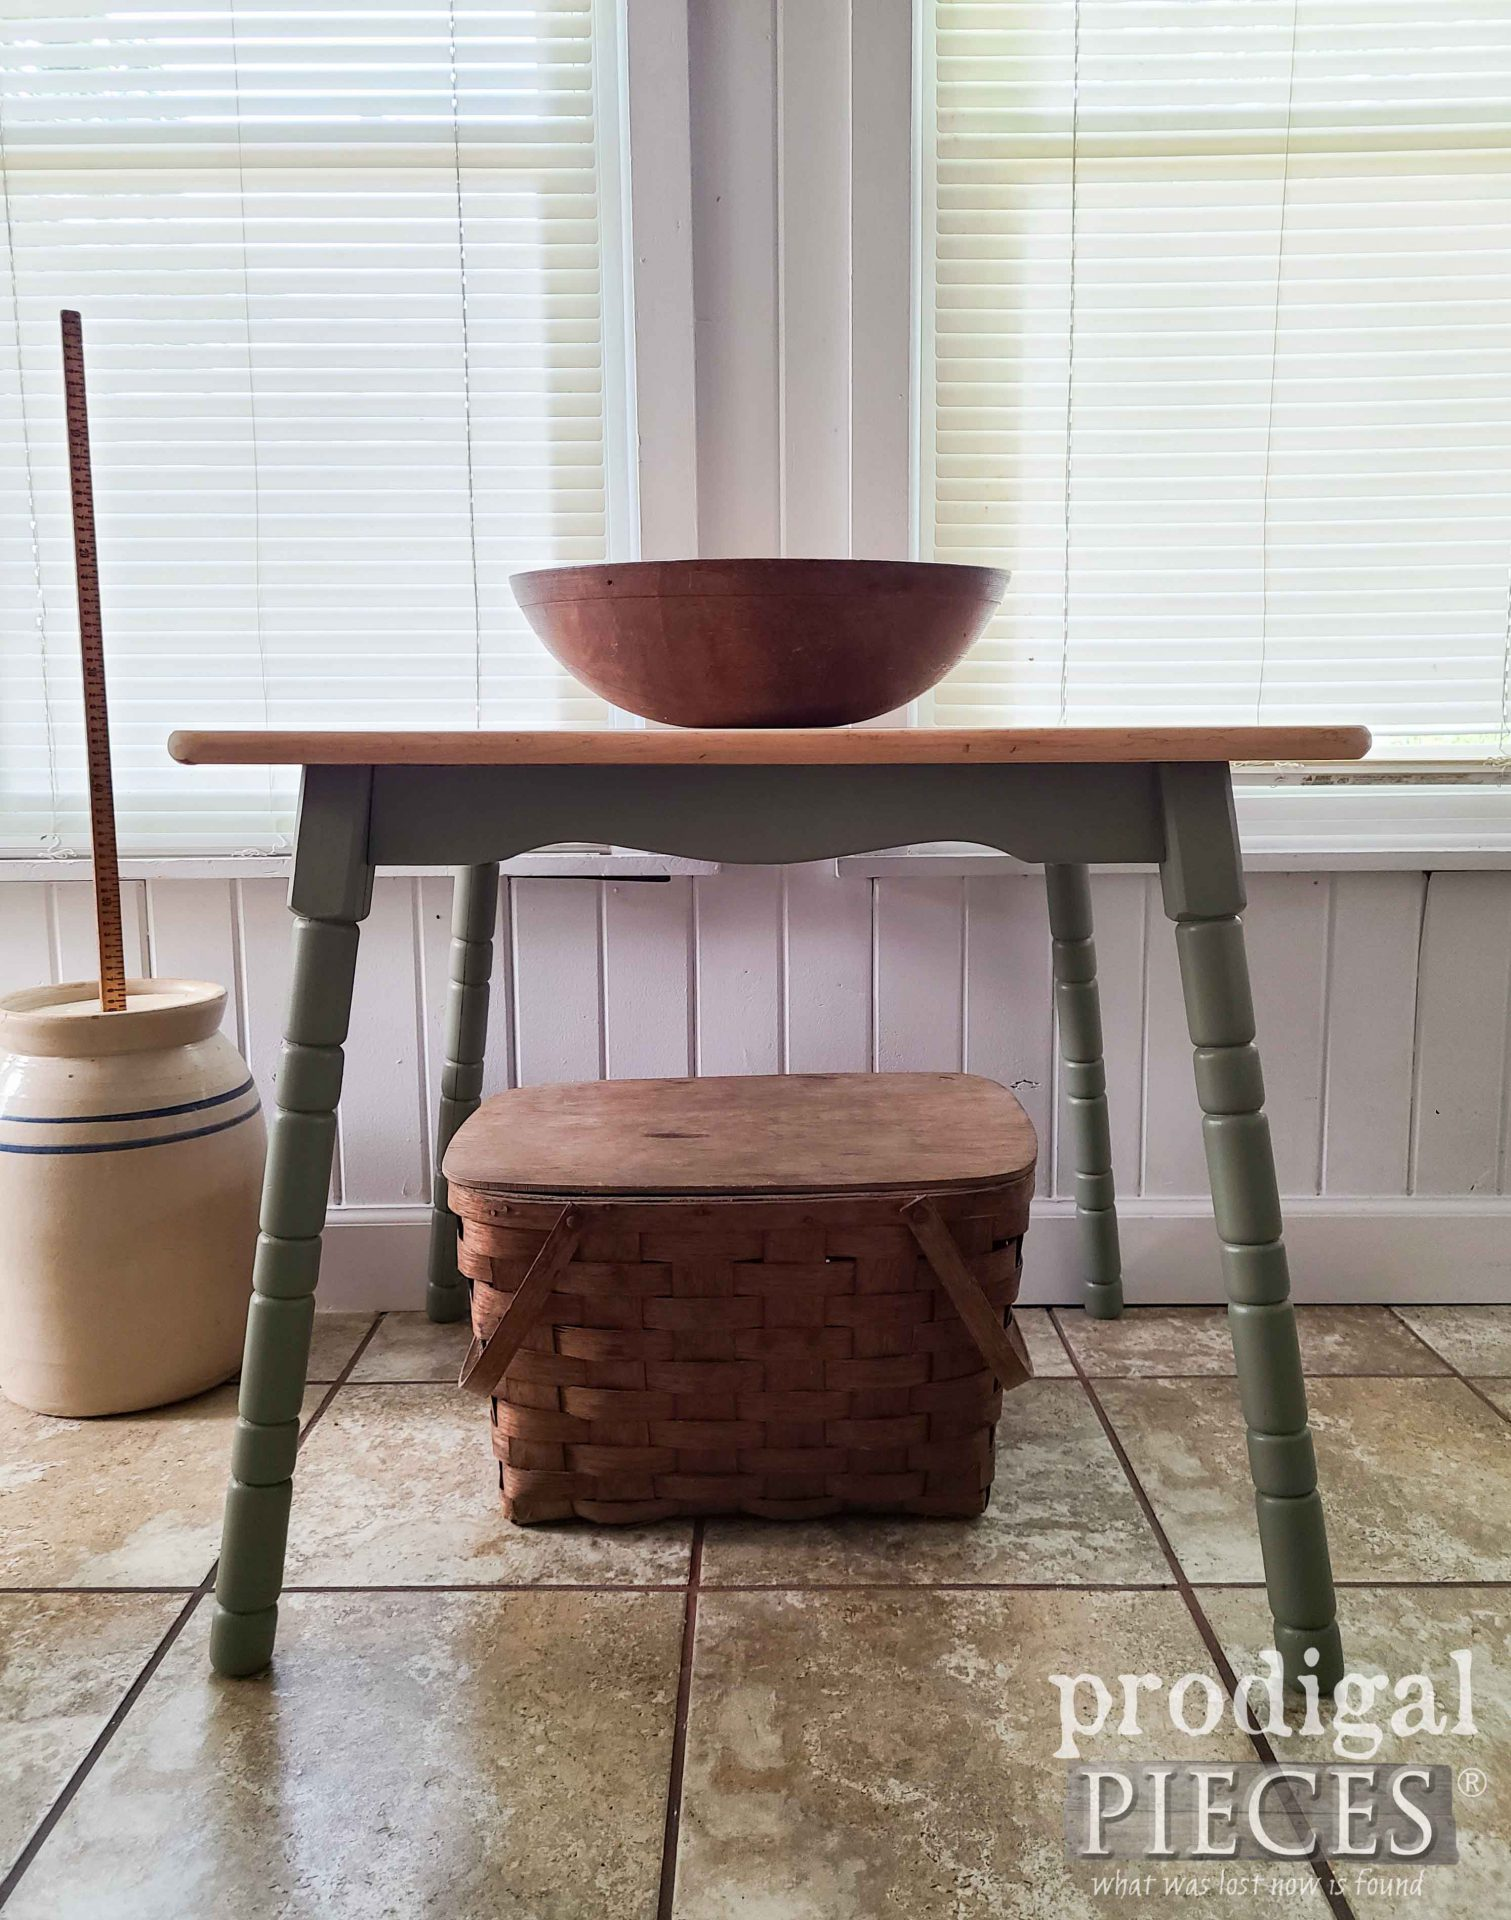 Vintage Maple Mini Farmhouse Side Table in Green by Larissa of Prodigal Pieces   prodigalpieces.com #prodigalpieces #furniture #farmhouse #diy